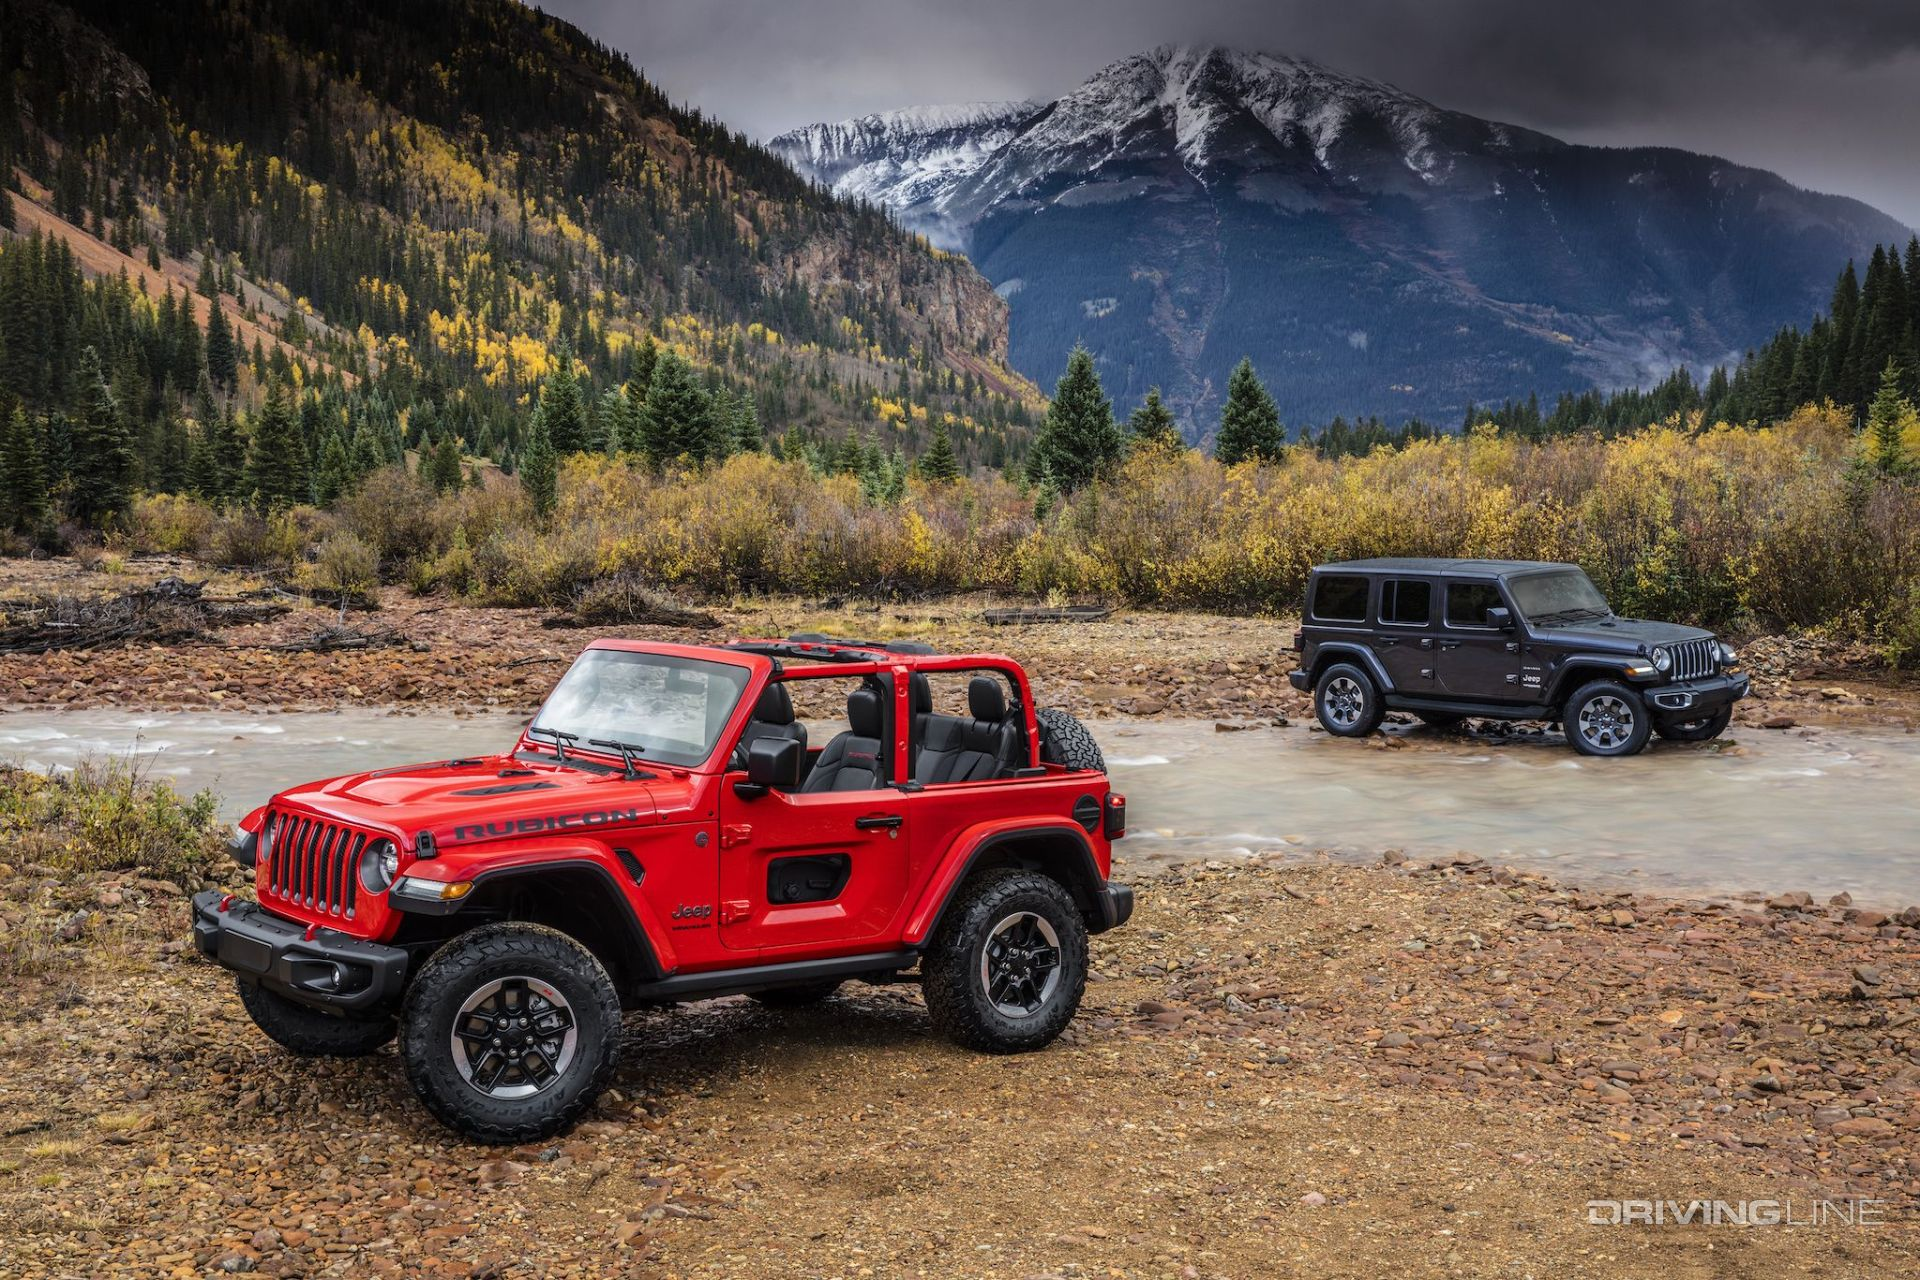 Off Roading Near Me >> The JL is Here! 10 Things You Need to Know About the All-New 2018 Jeep Wrangler | DrivingLine